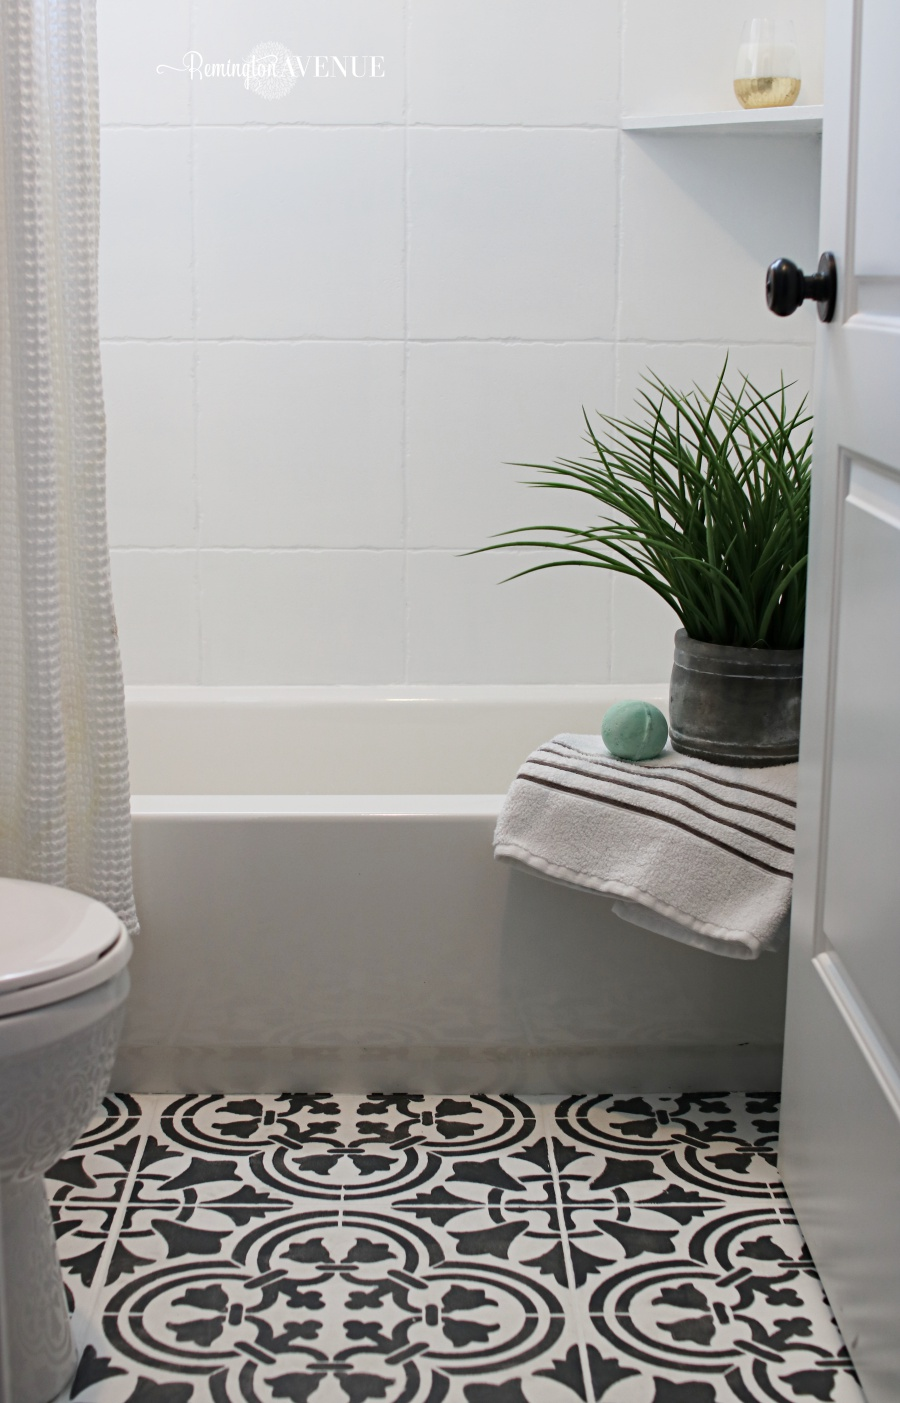 How to paint shower tile remington avenue for How to paint tiles bathroom